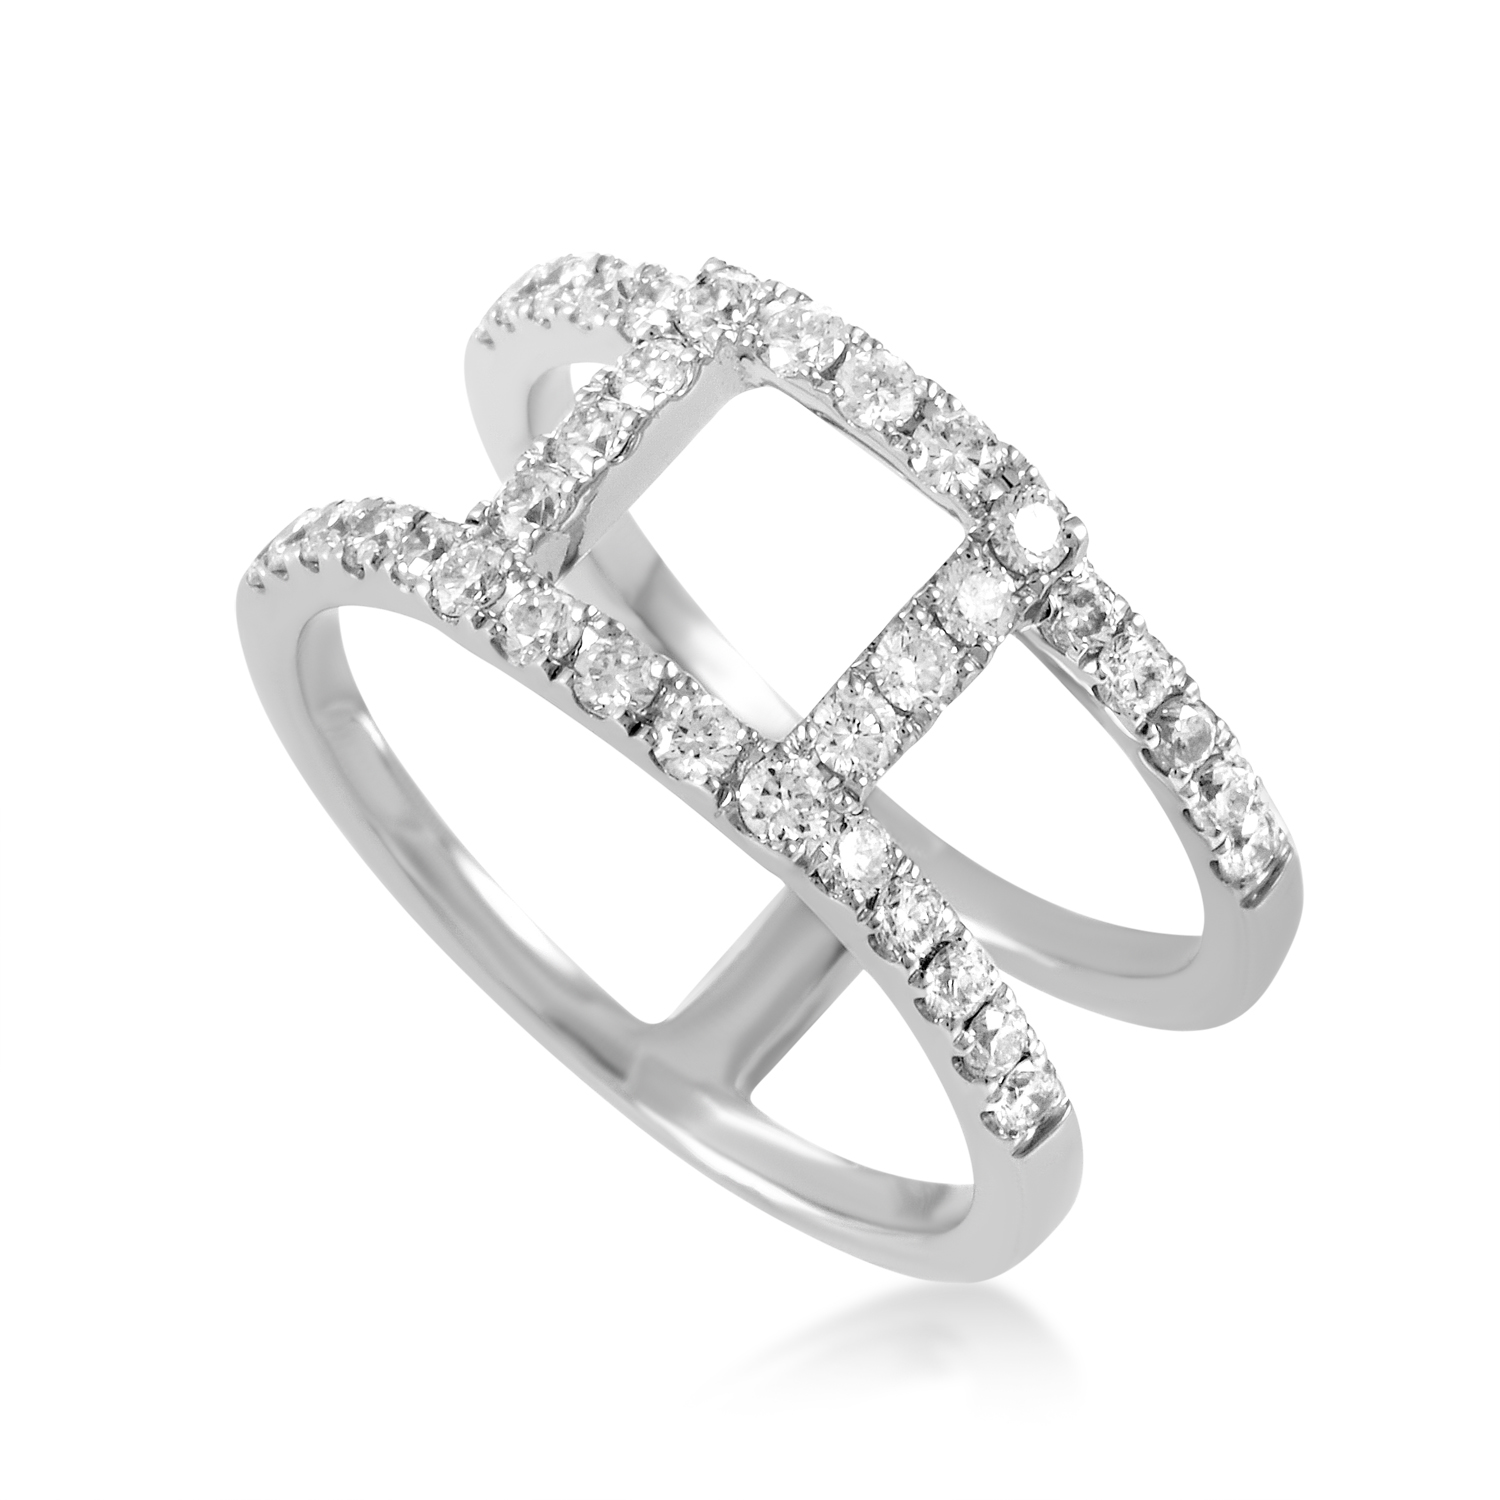 Women's 18K White Gold Openwork Diamond Band Ring ALR-11229W